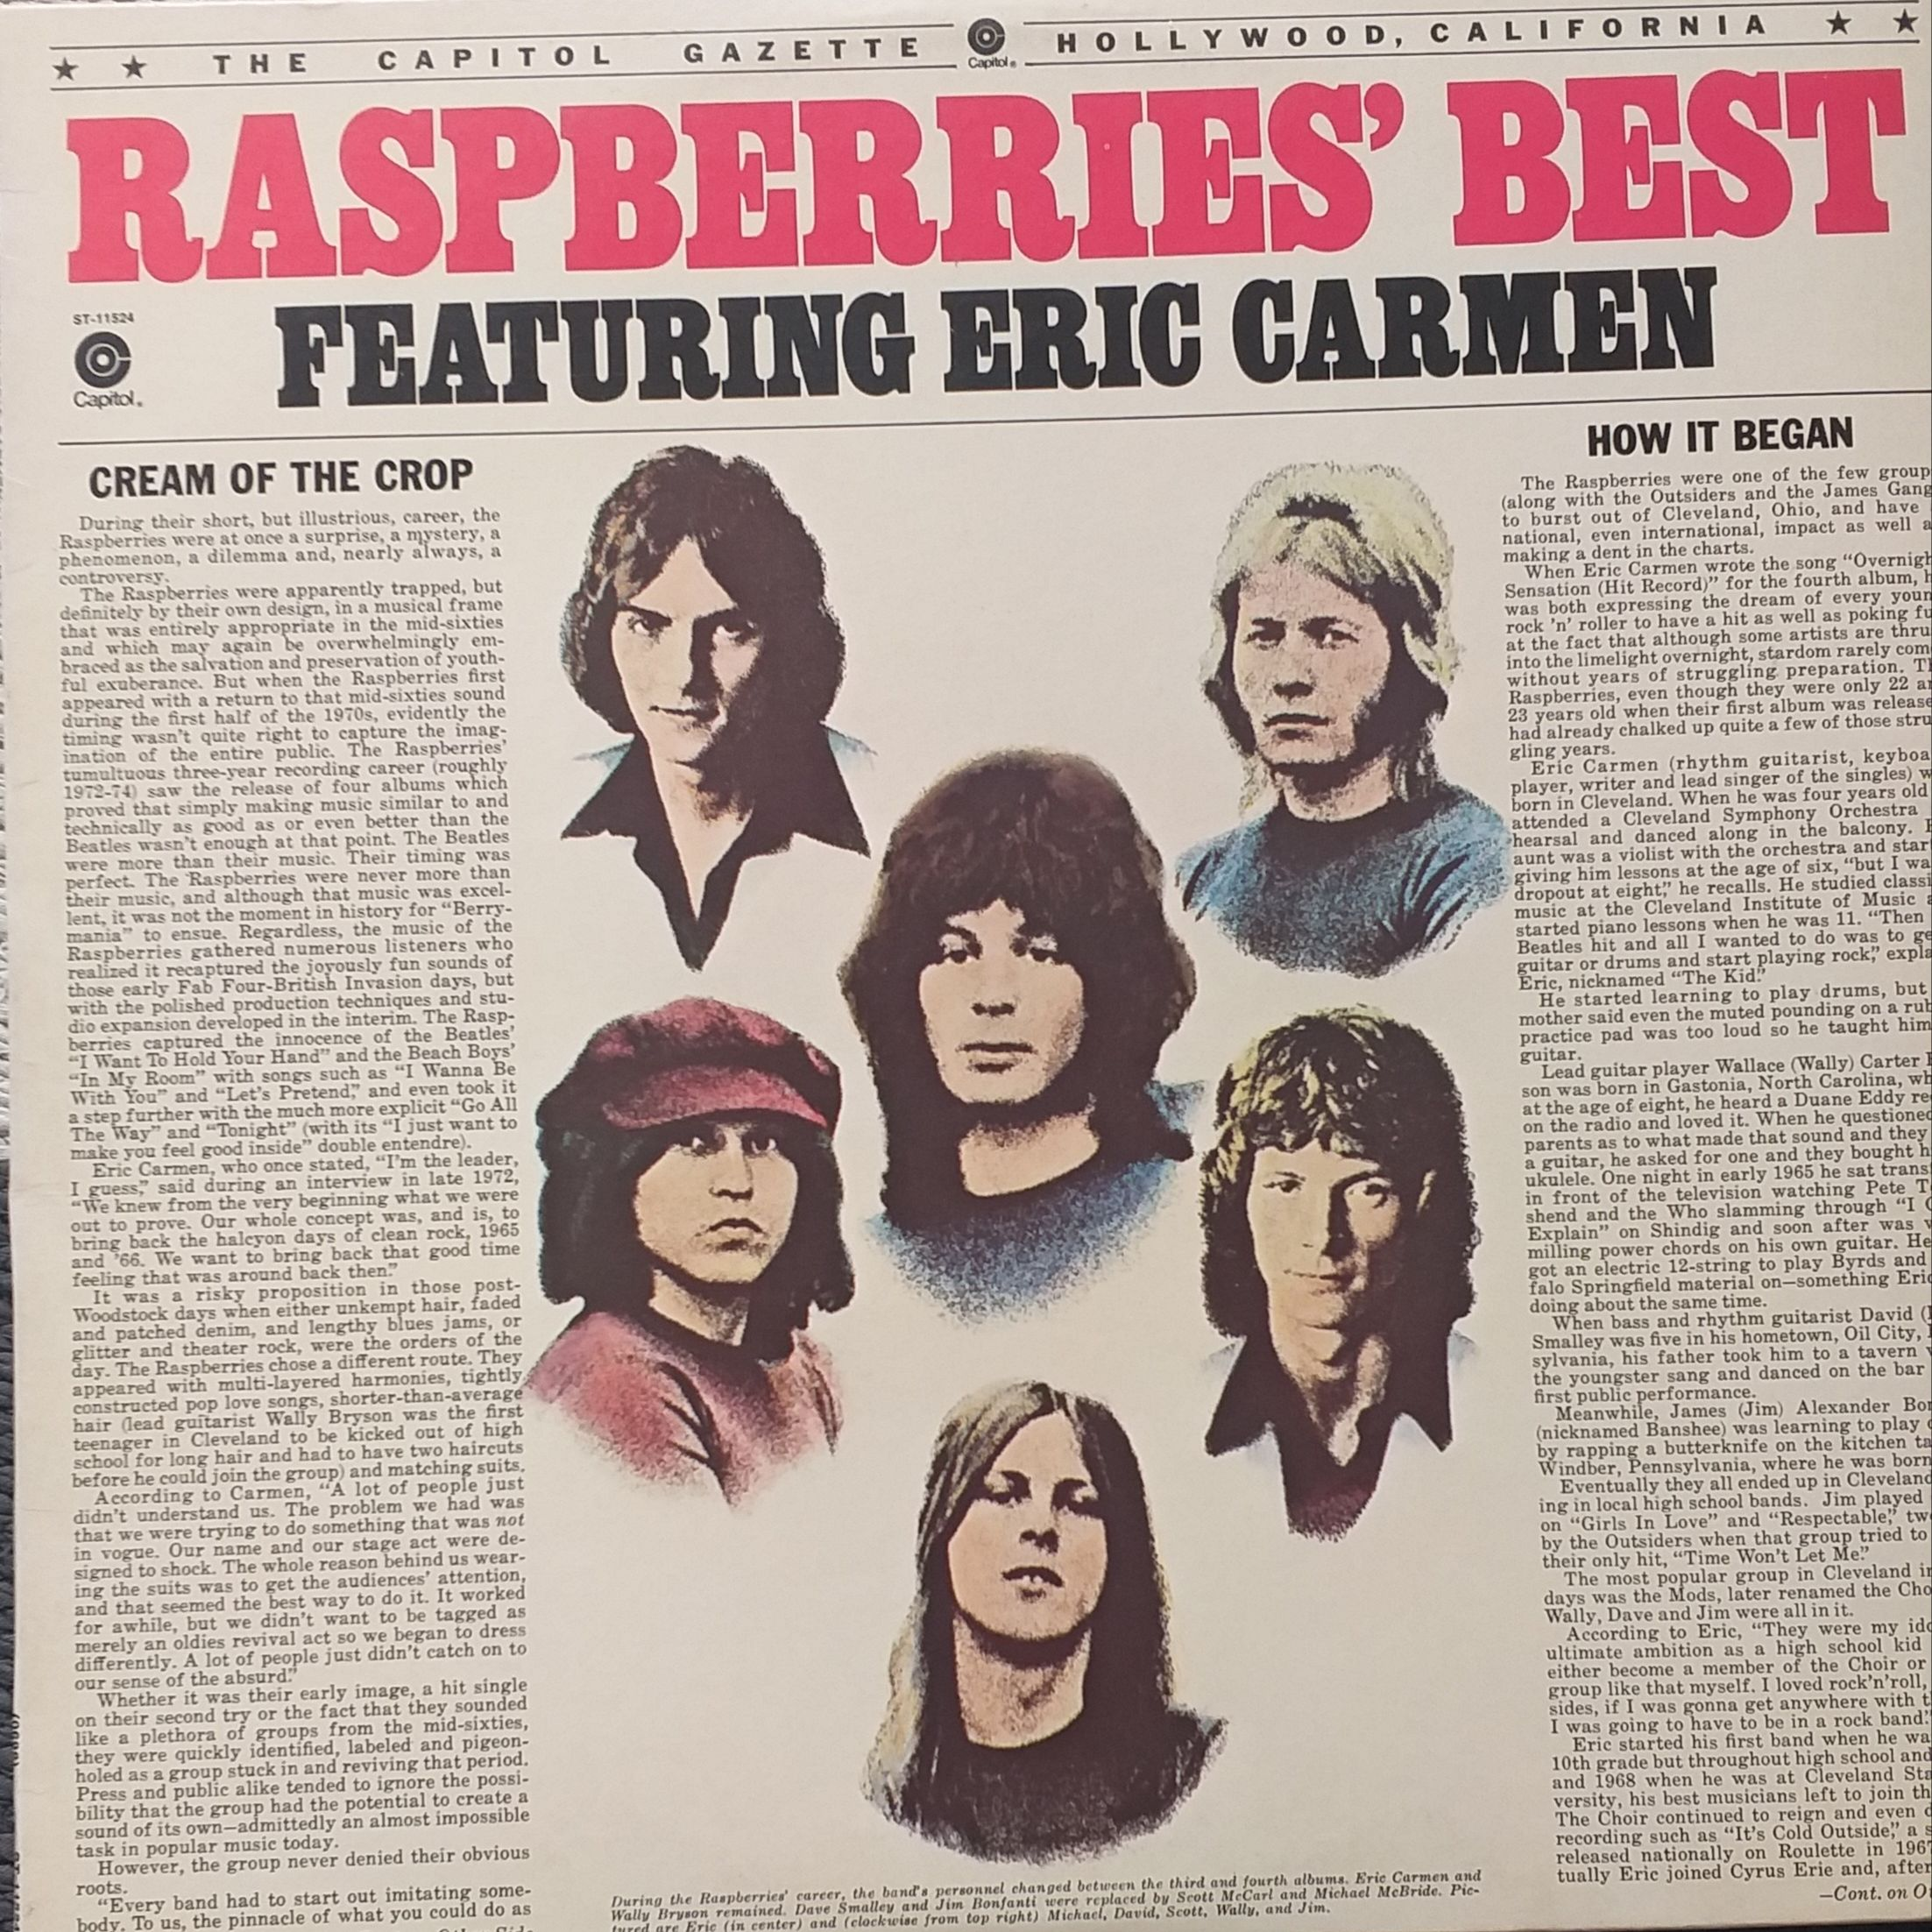 The Raspberries Best featuring Eric Carmen LP undefined